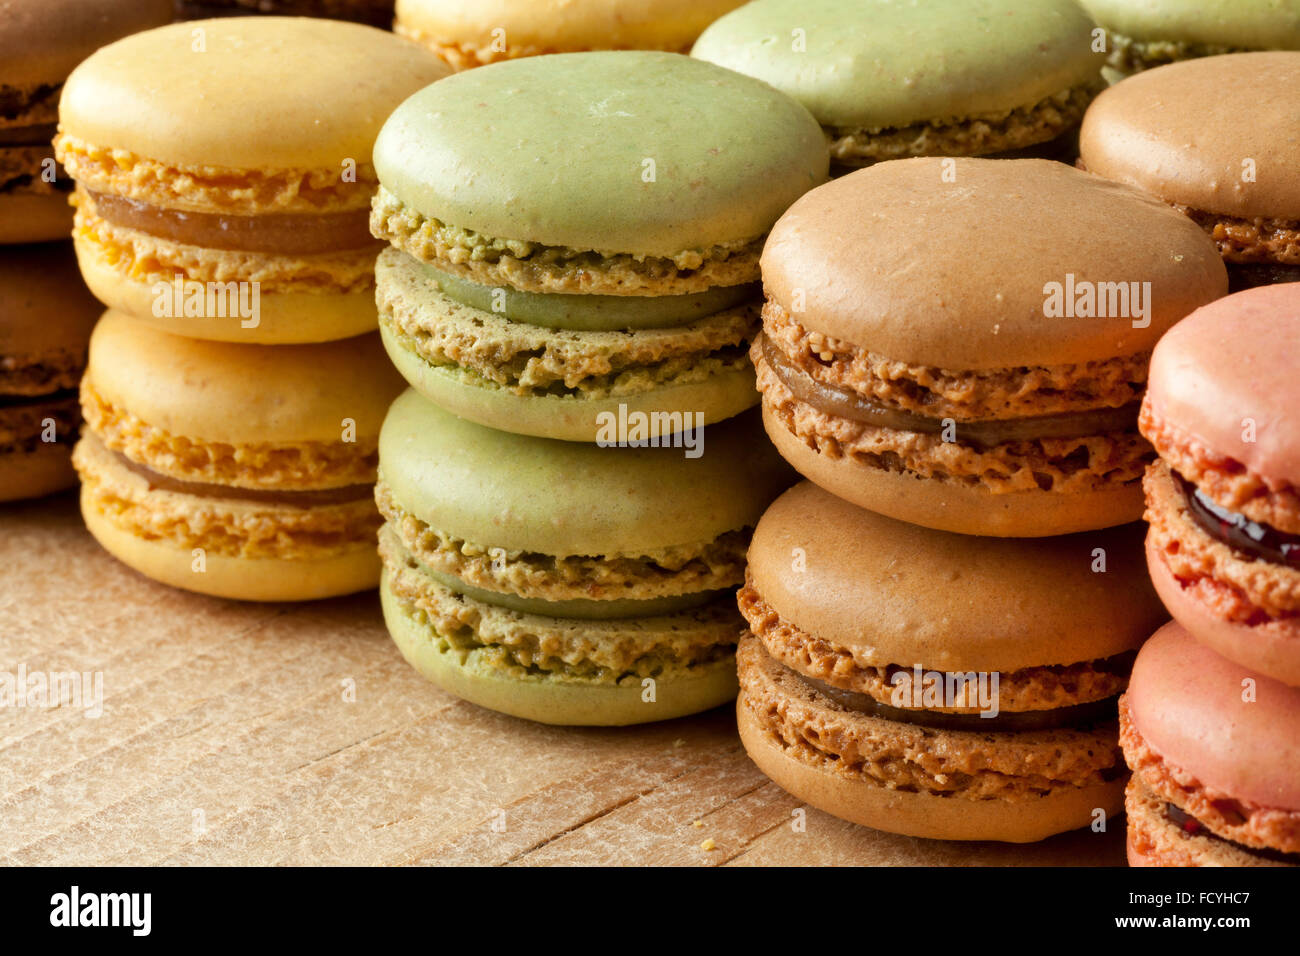 Fresh baked french macarons in rows - Stock Image